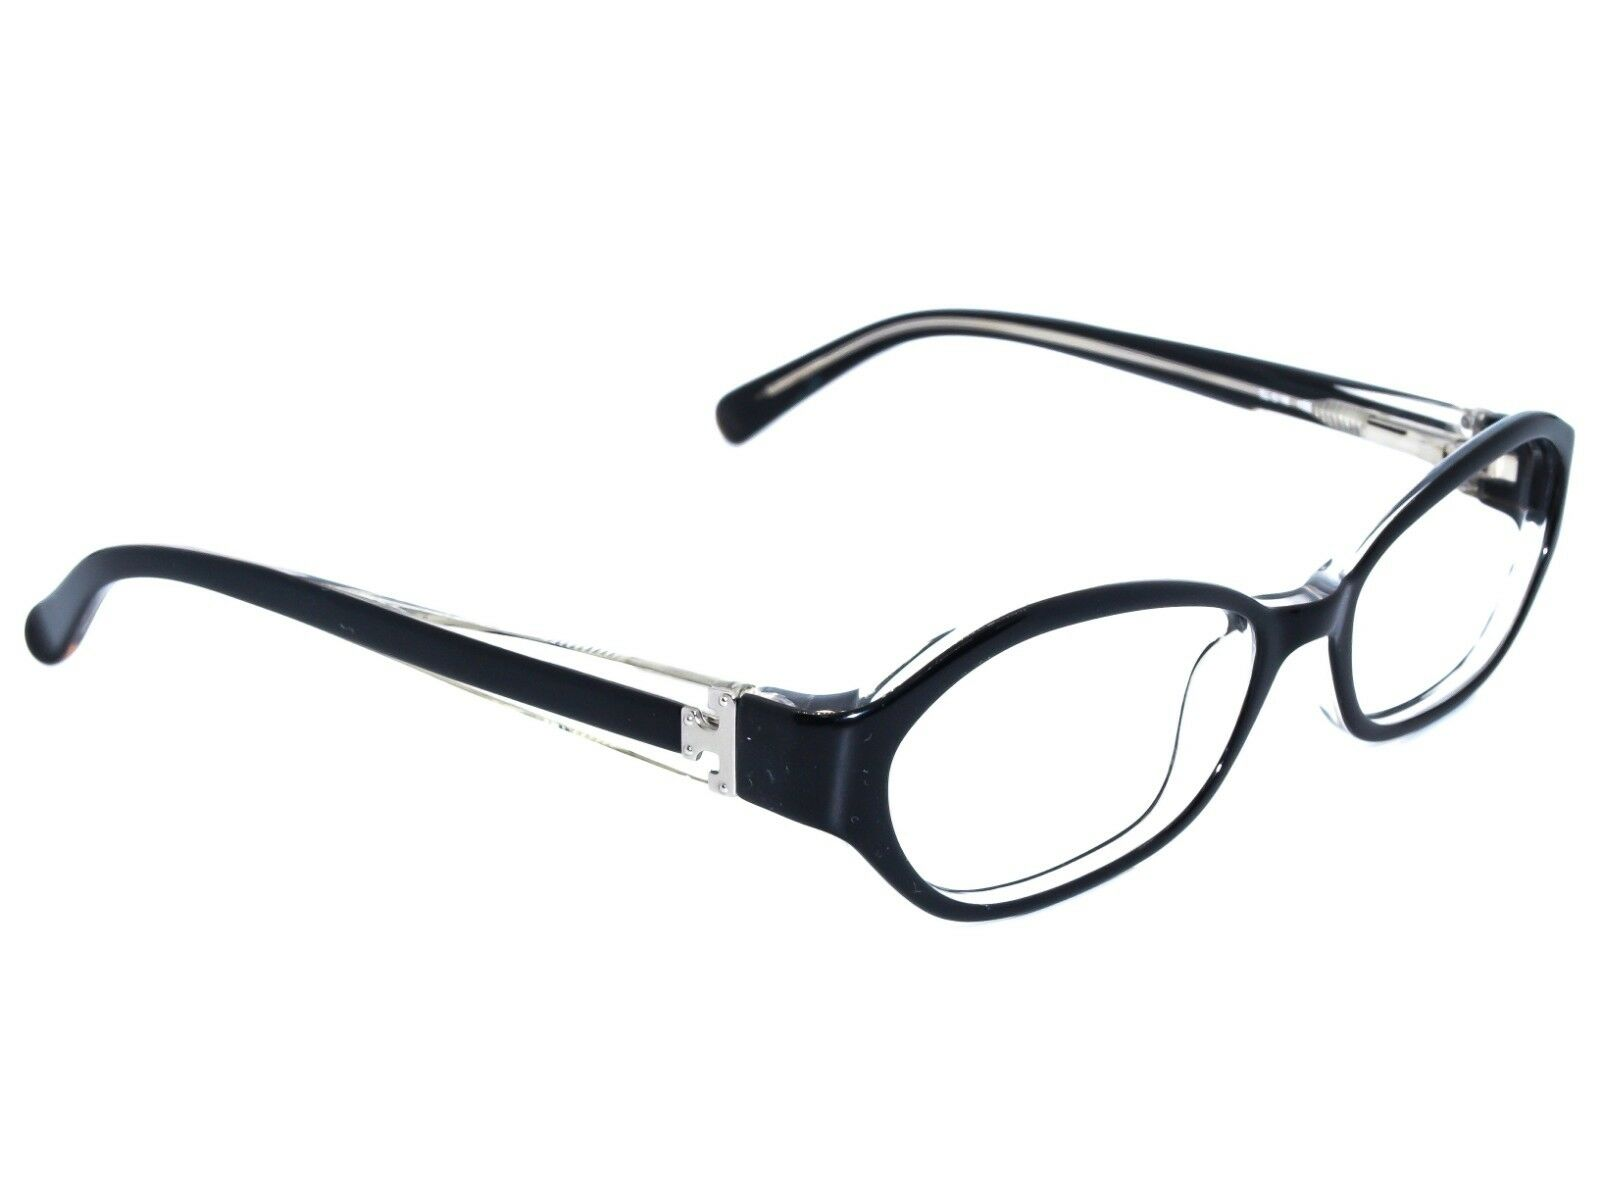 Tory Burch TY2002 541 Eyeglasses